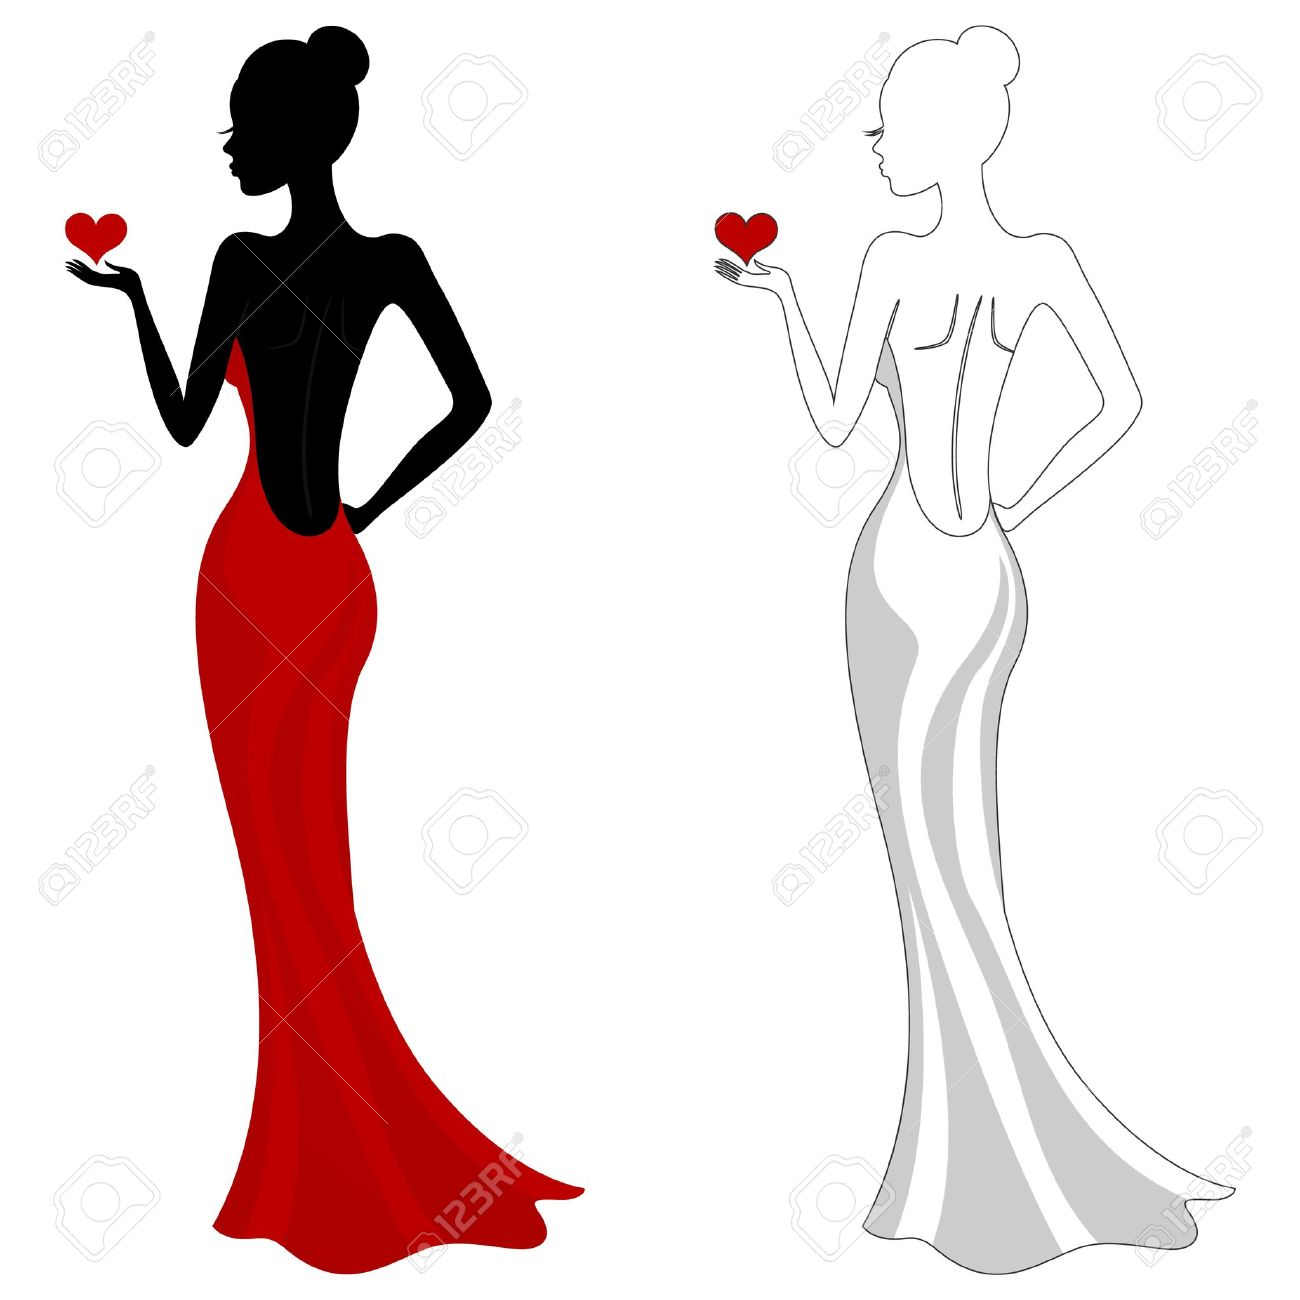 Gown clipart beautiful dress Con Buscar Dress Illustrations Google